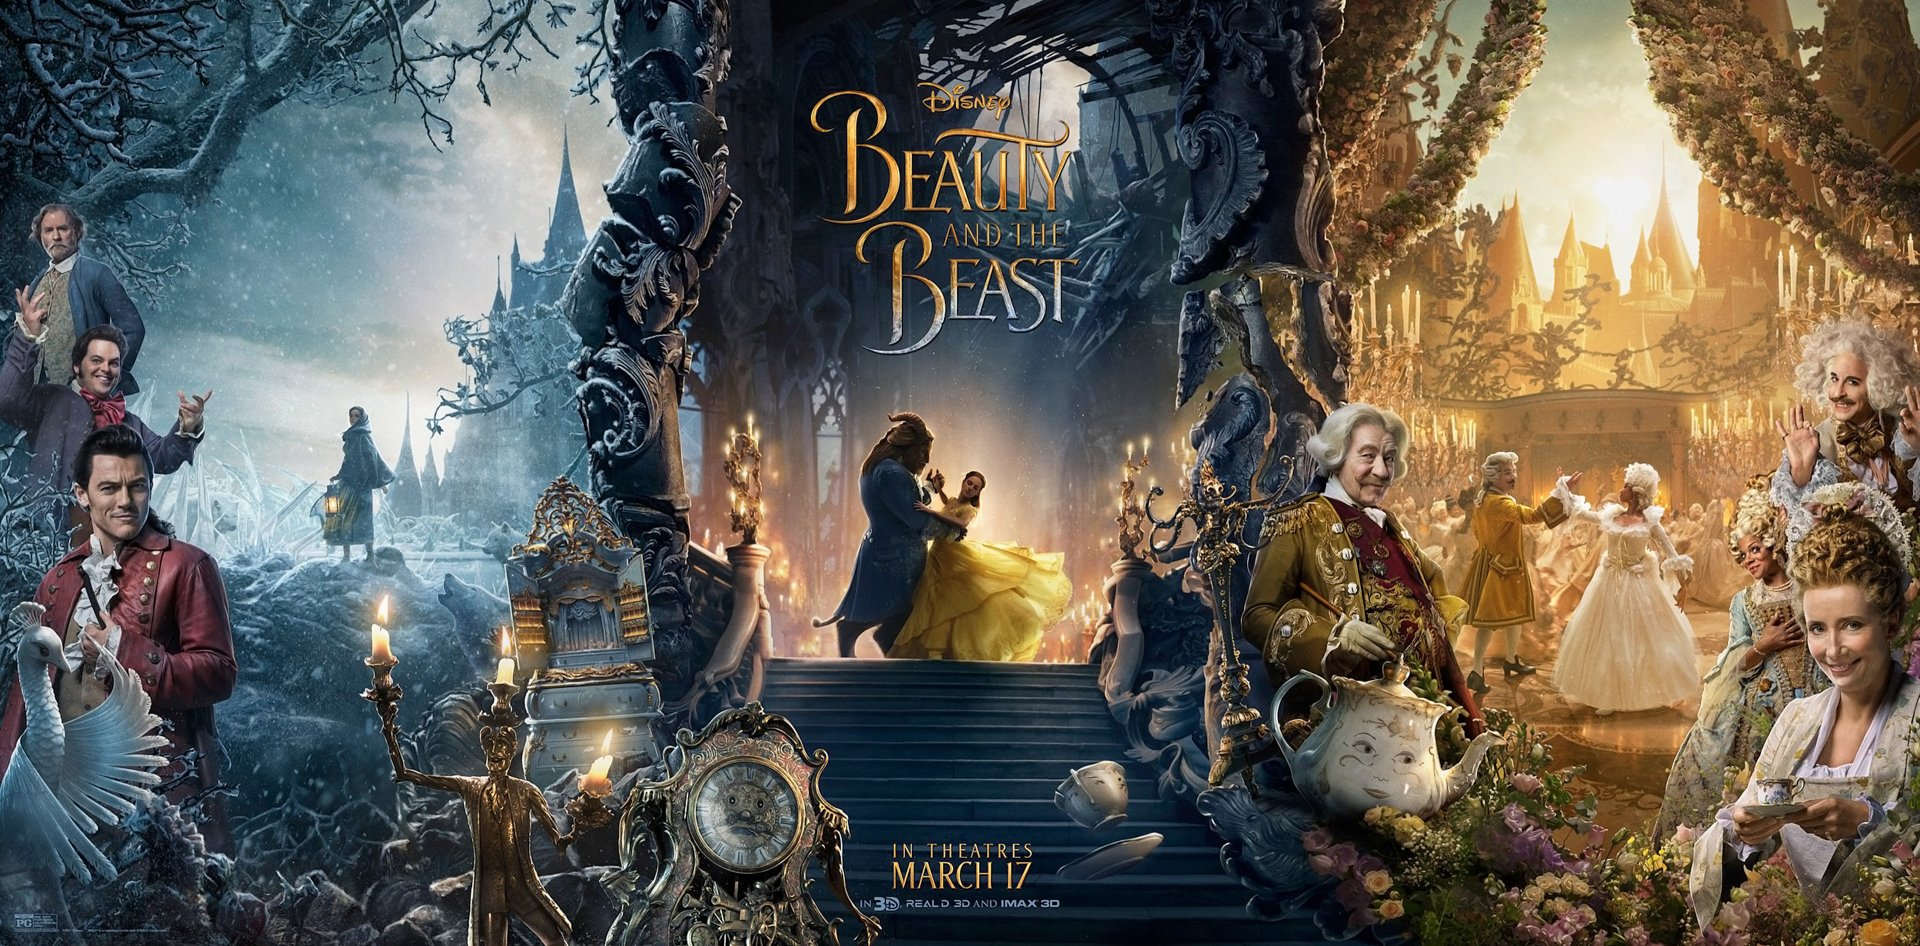 Movie - Beauty And The Beast (2017)  Emma Watson Ewan McGregor Ian McKellen Dan Stevens Luke Evans Emma Thompson Kevin Kline Josh Gad Gugu Mbatha-Raw Stanley Tucci Audra McDonald Wallpaper